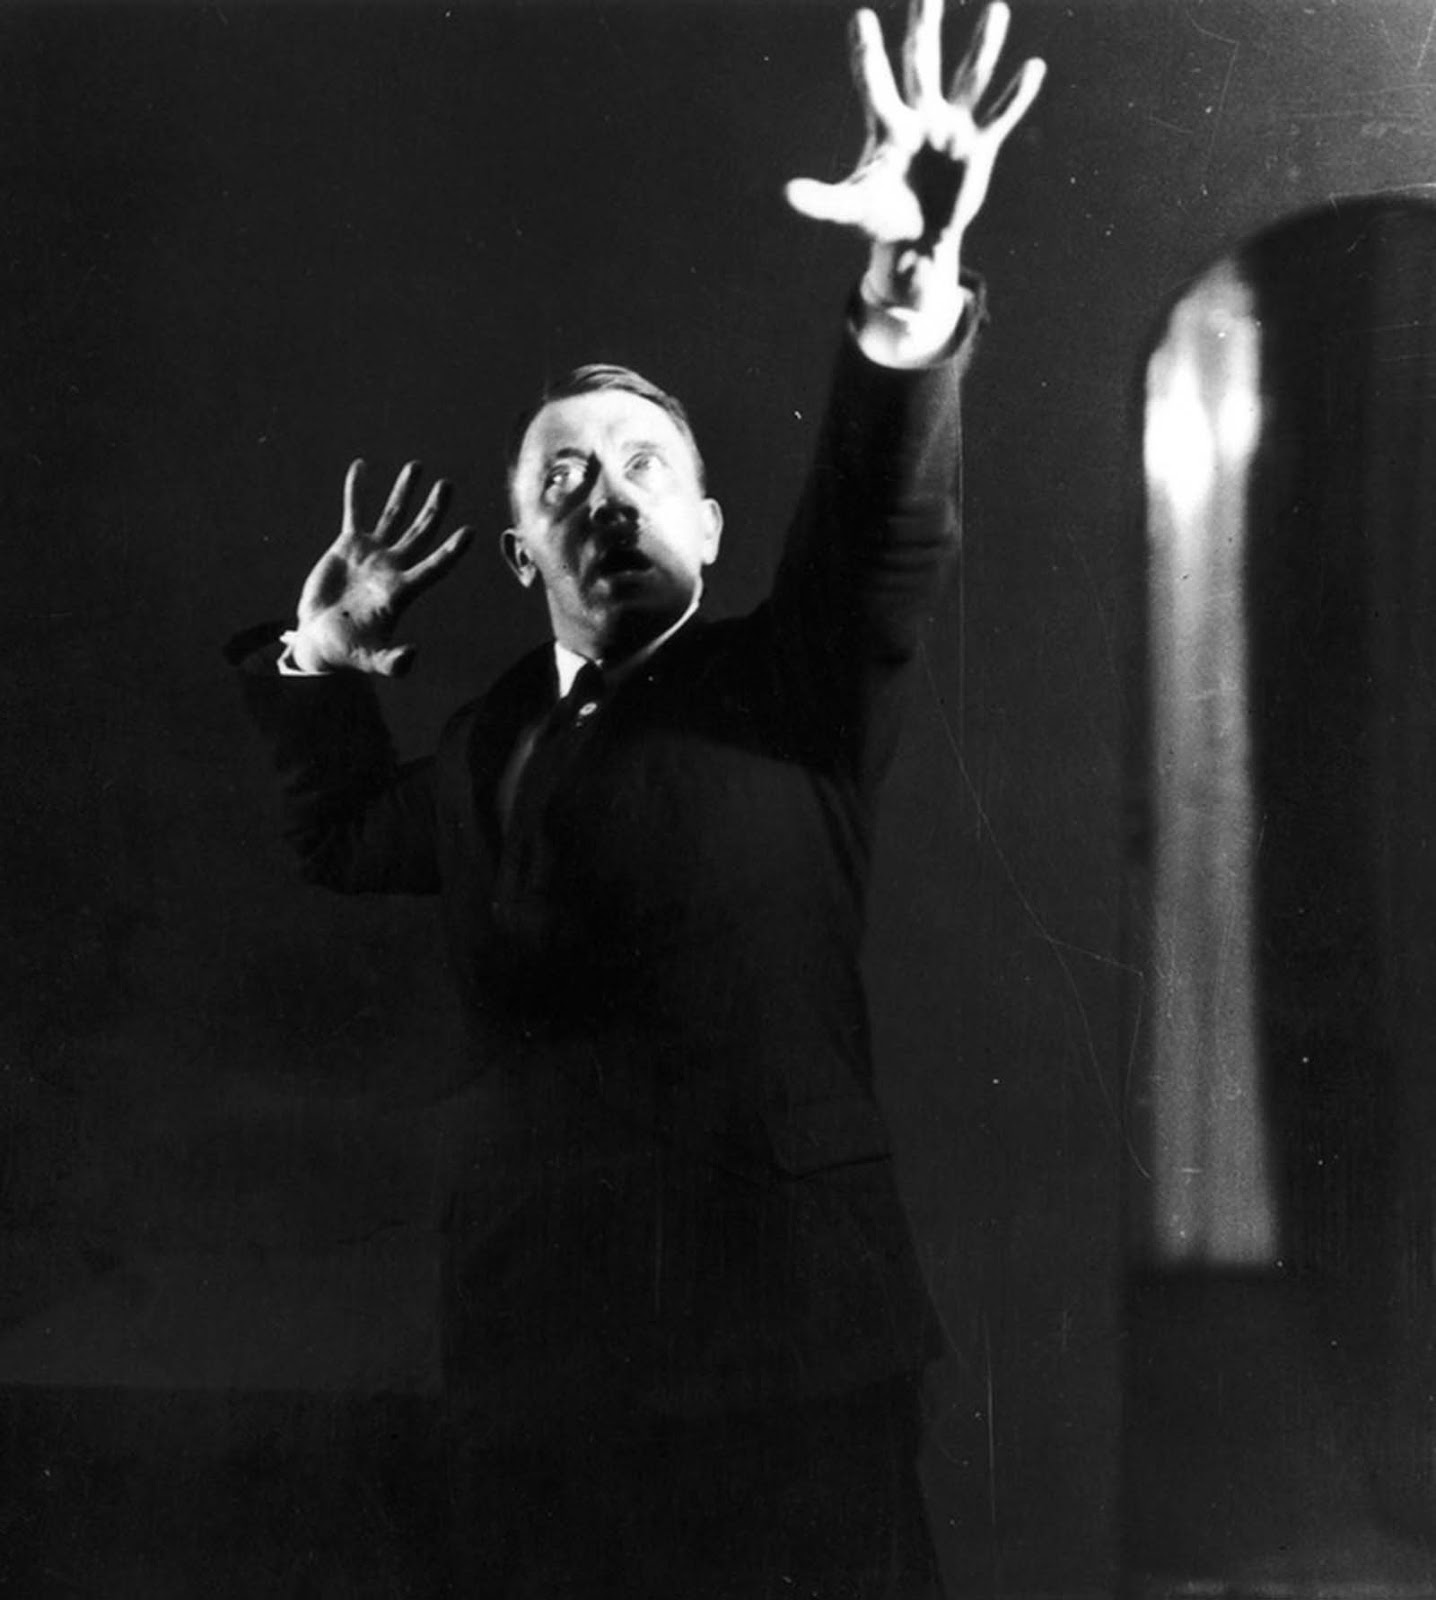 Hitler rehearsing his public speech in front of the mirror.